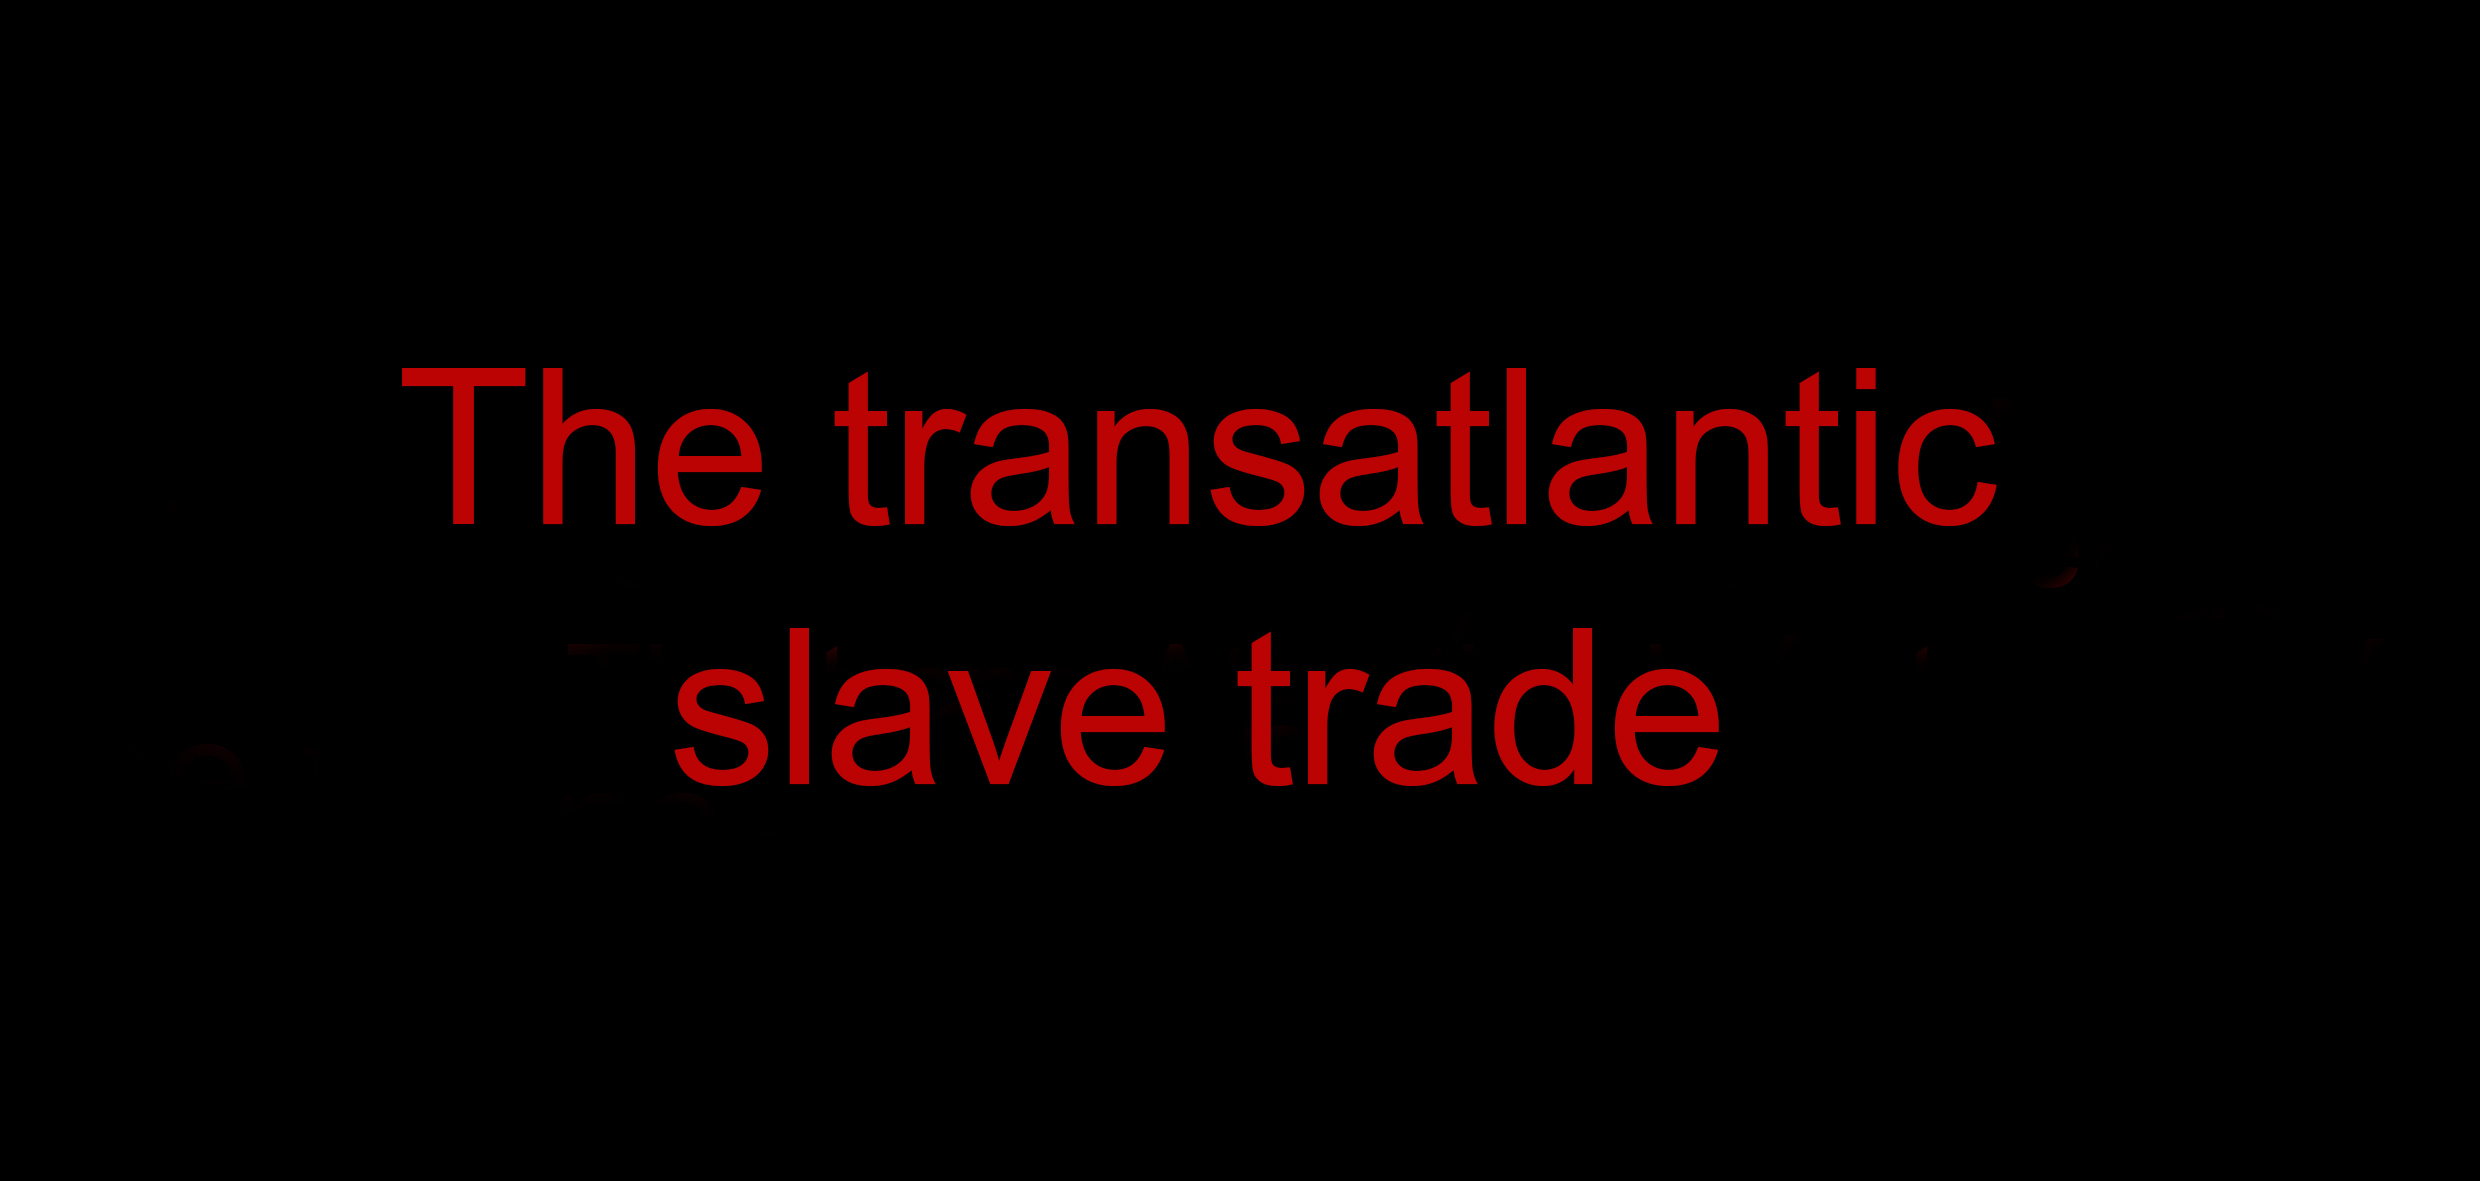 The transatlantic slave trade: our city, its heritage and its people